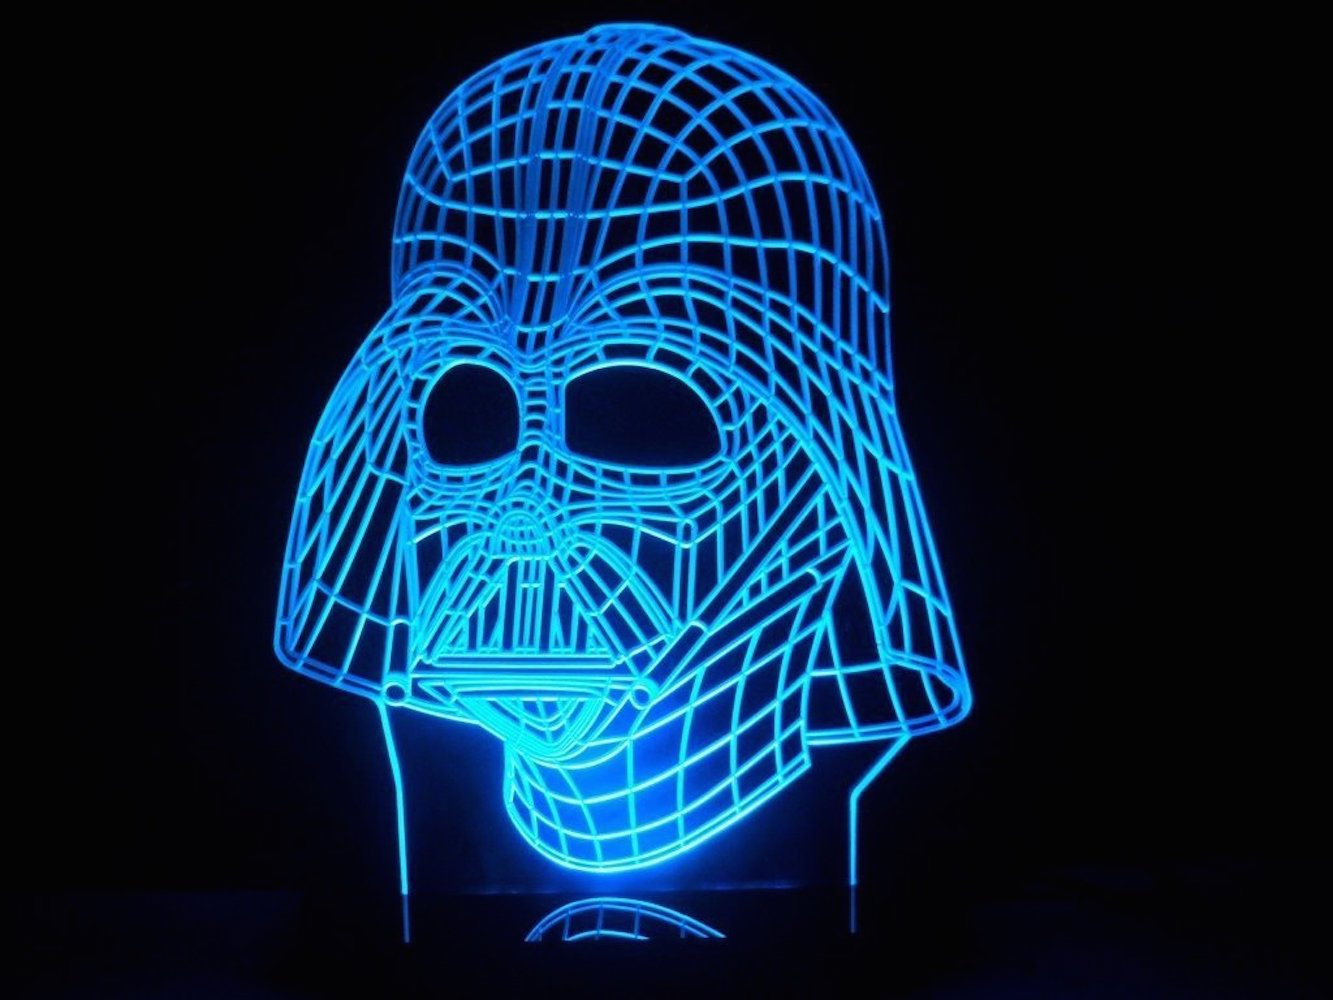 darth-vader-led-light-table-lamp-04